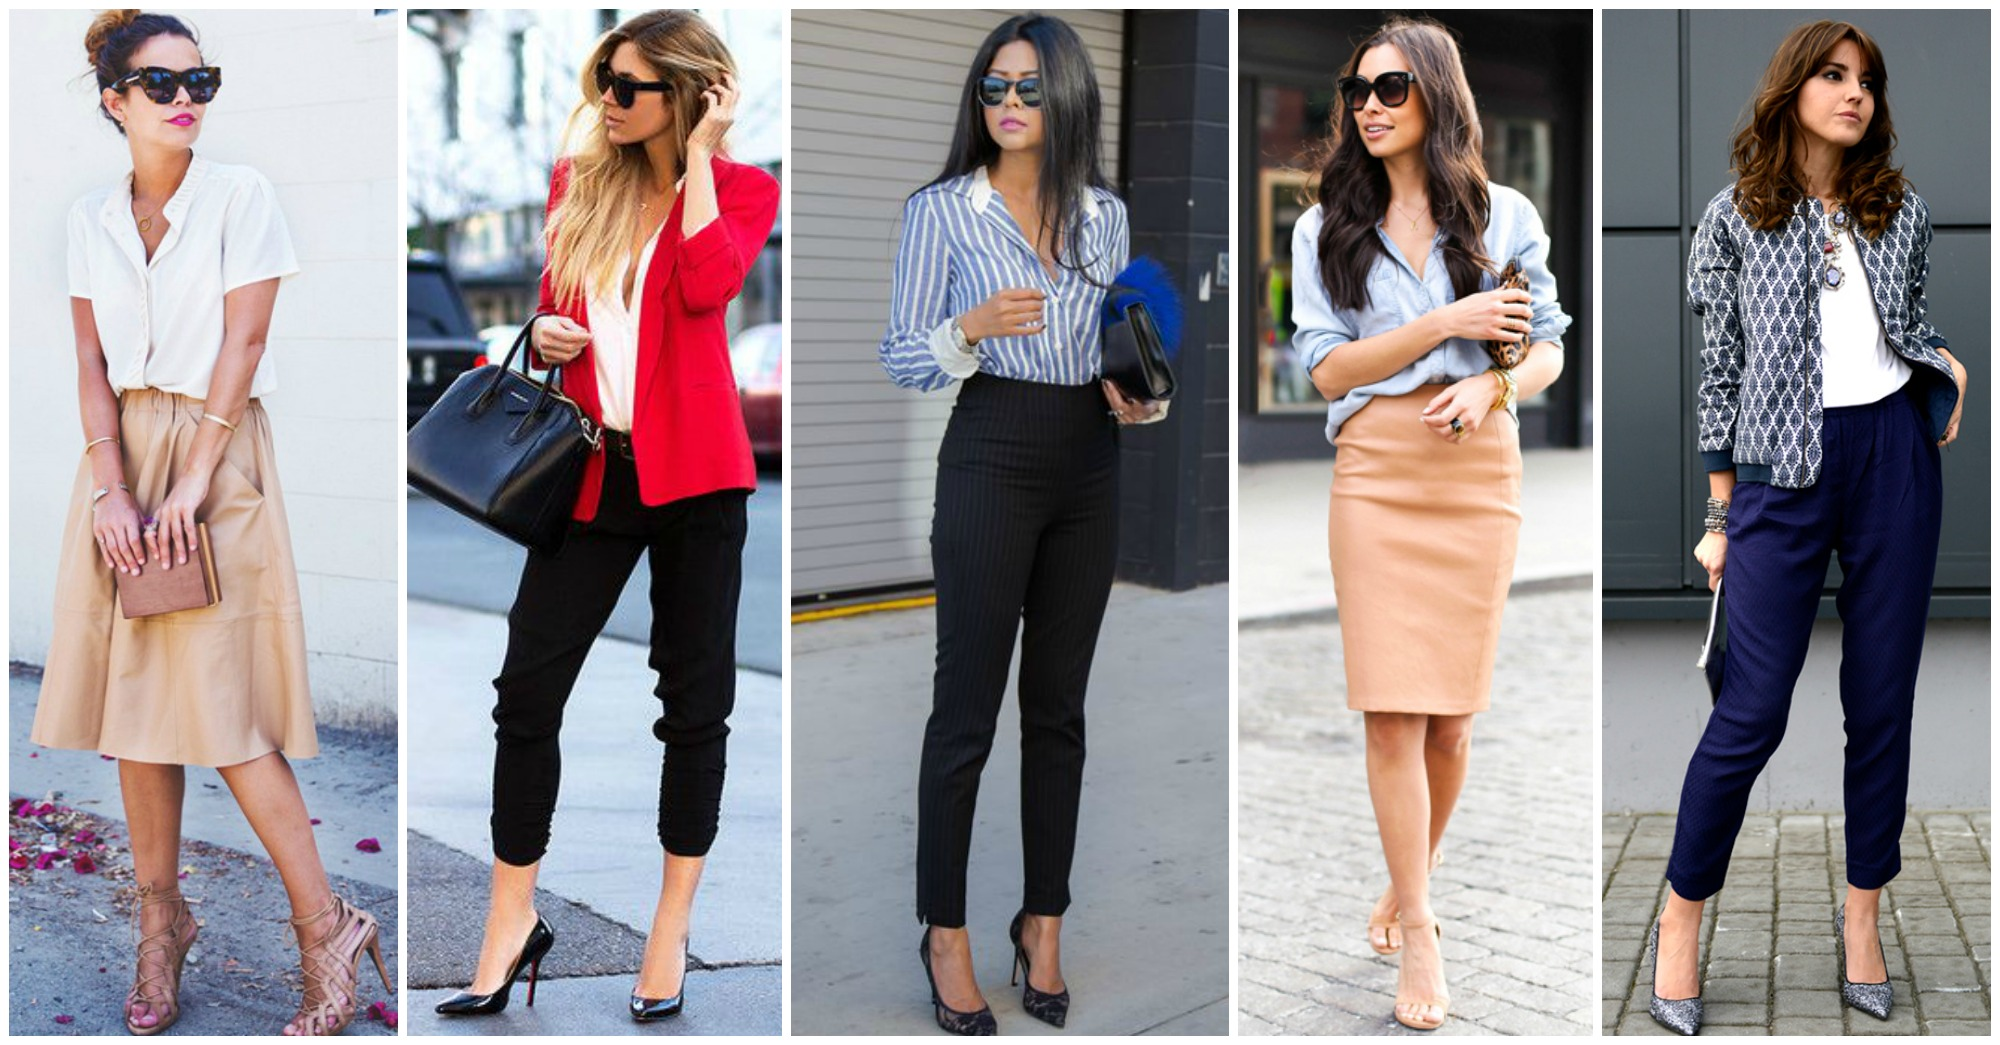 Classy and Chic Outfits to Wear To Work This Spring